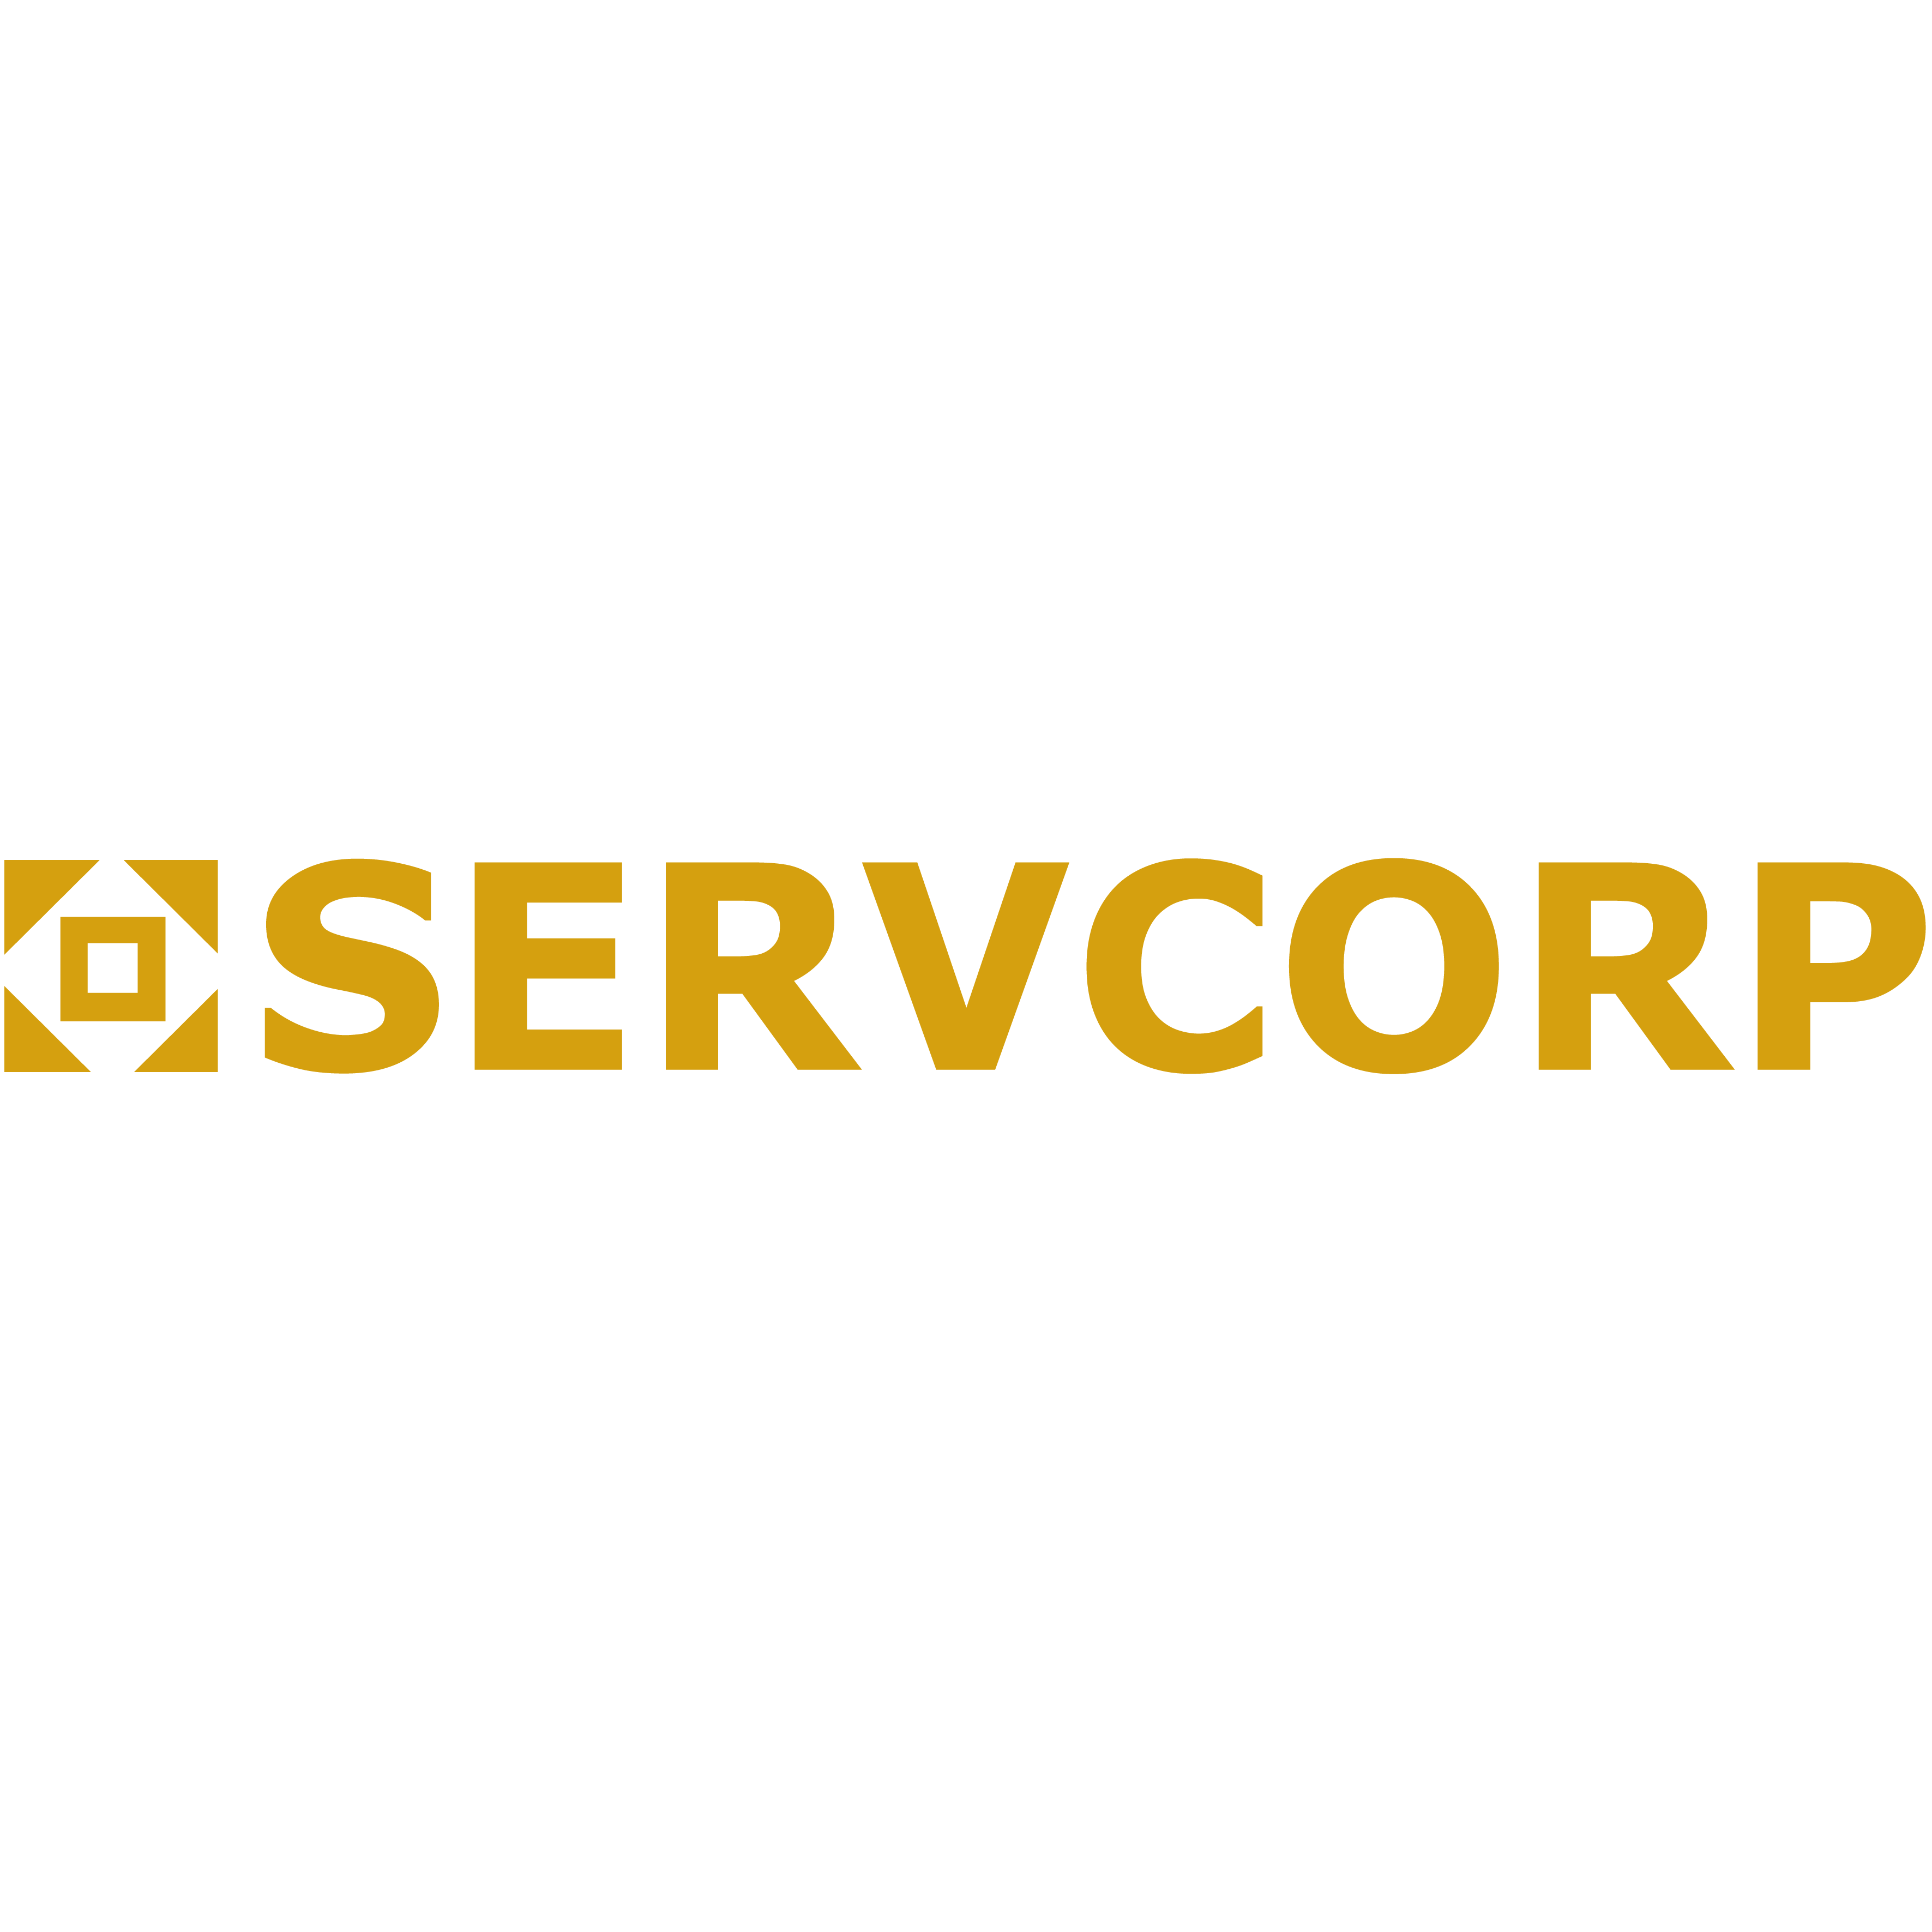 Servcorp Limited logo